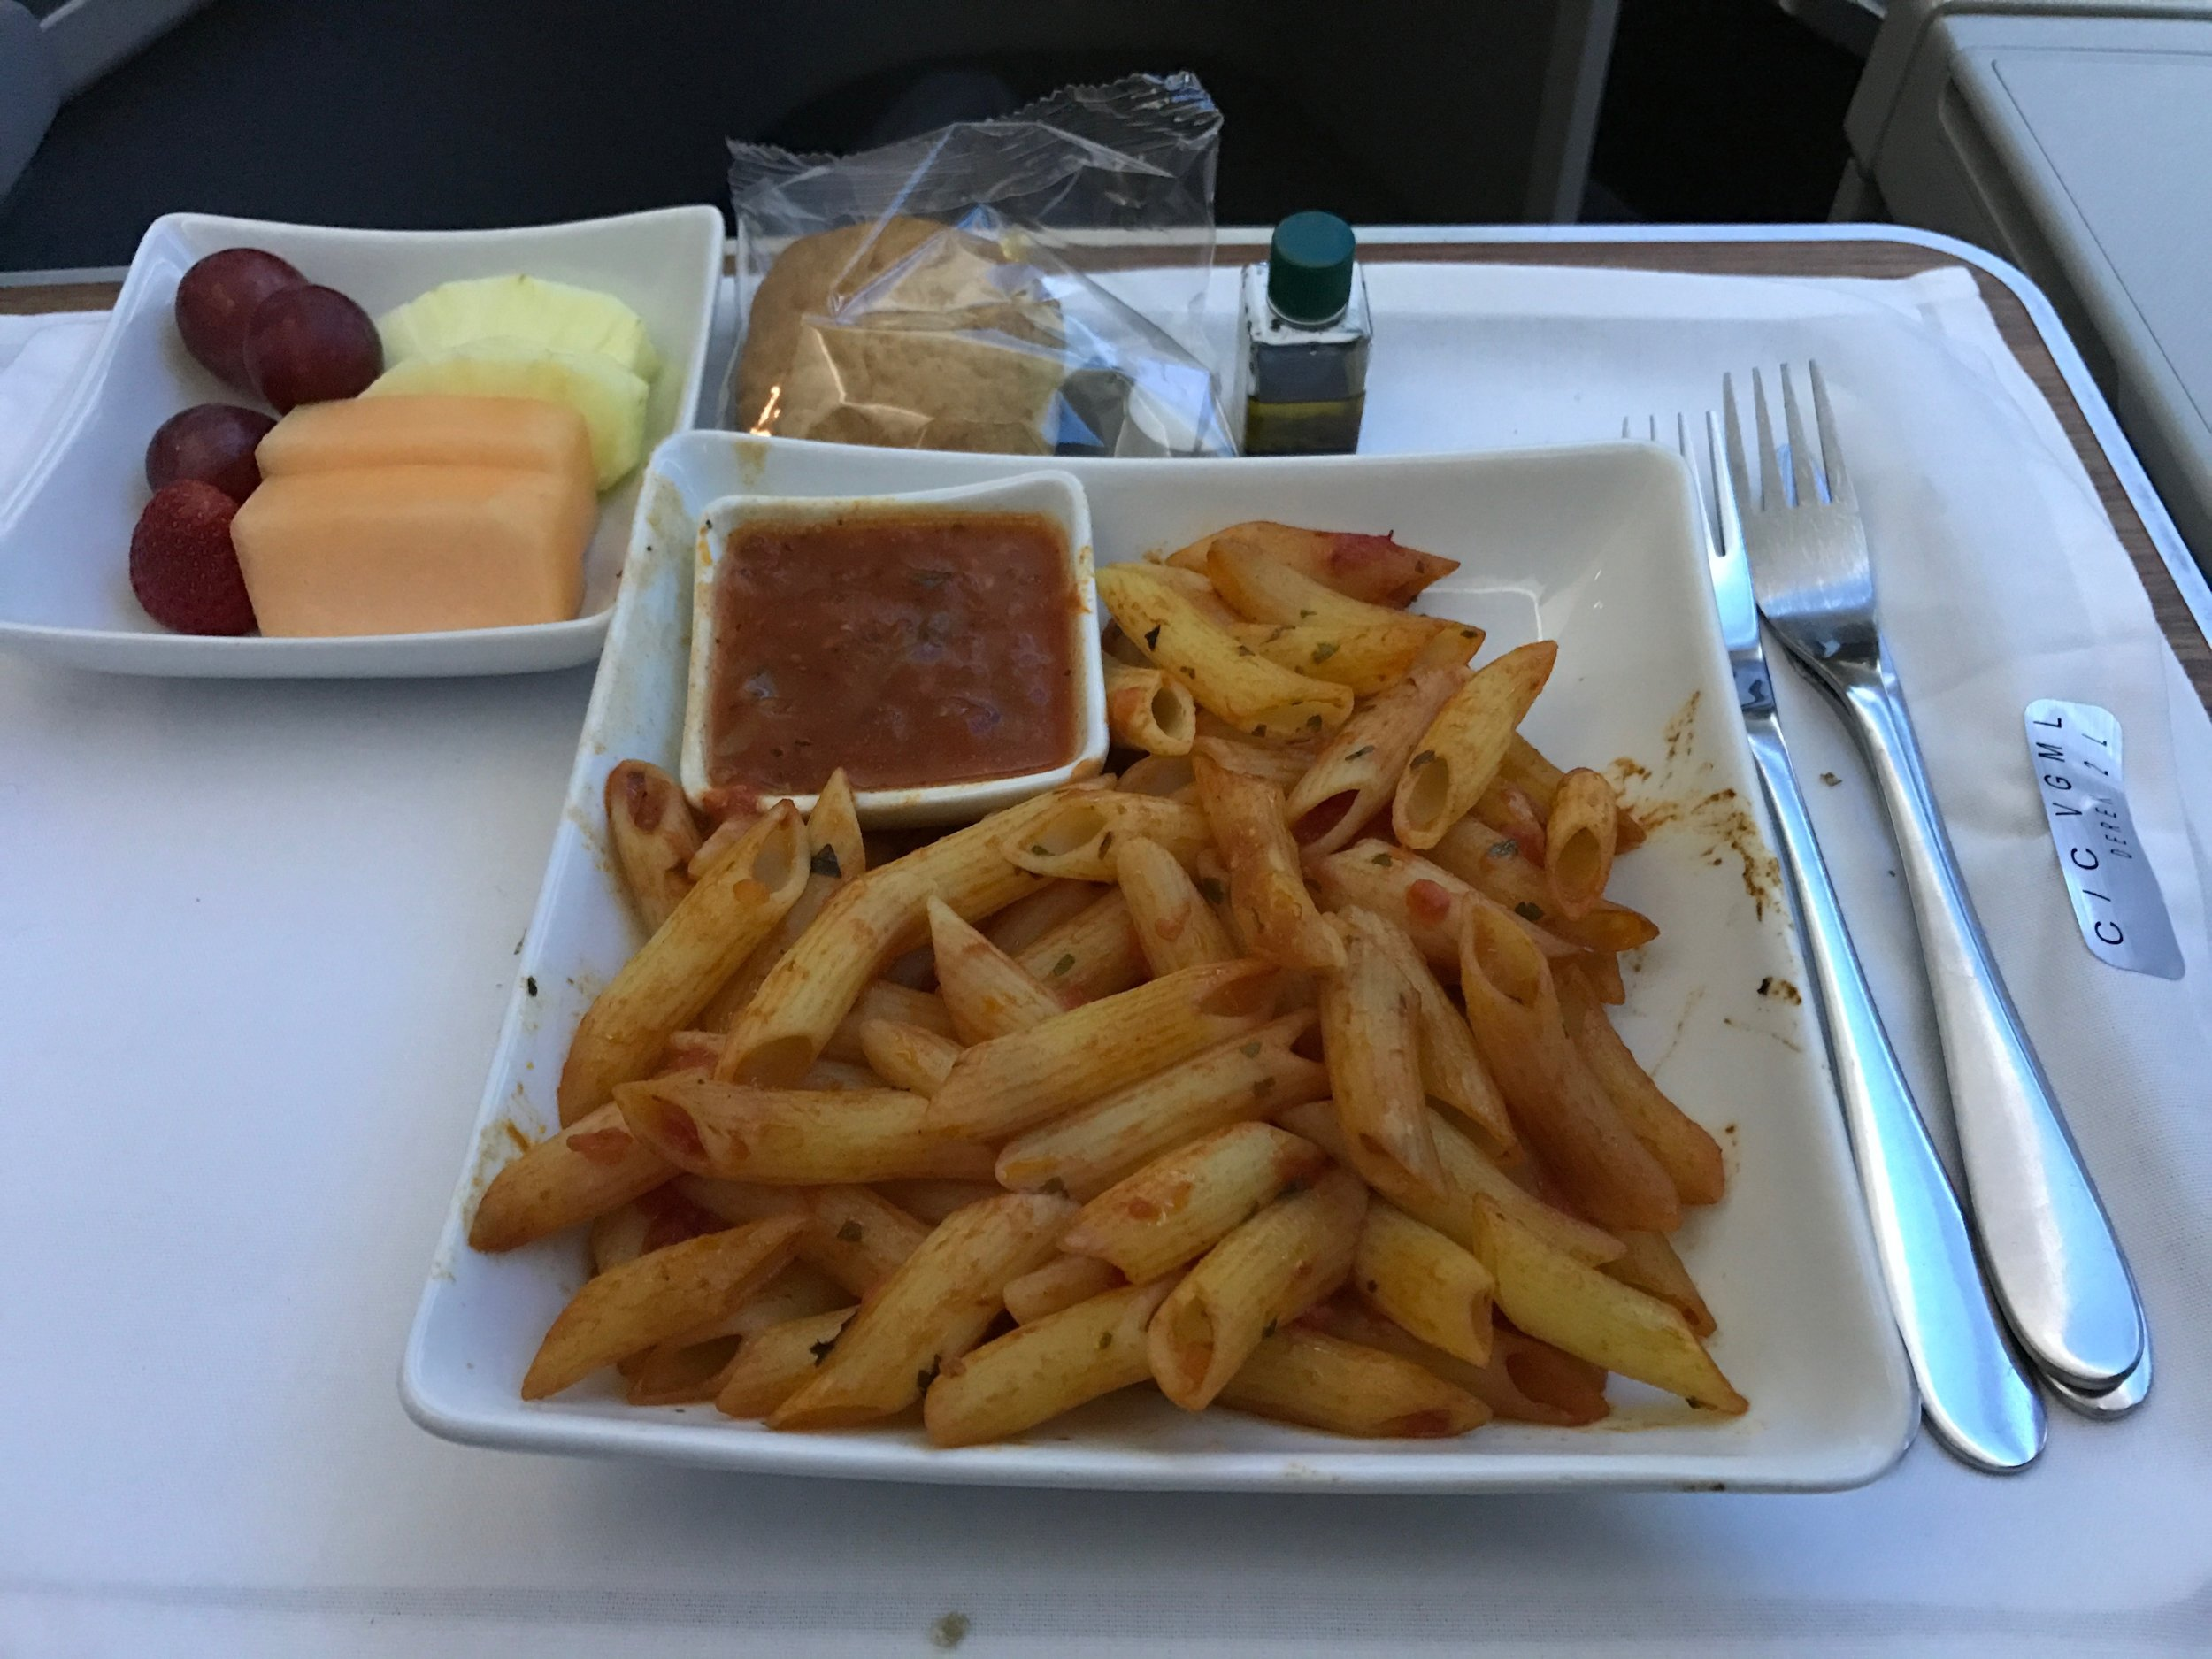 Vegetarian (VGML) special meal - lunch entree - AA186 PEK to ORD